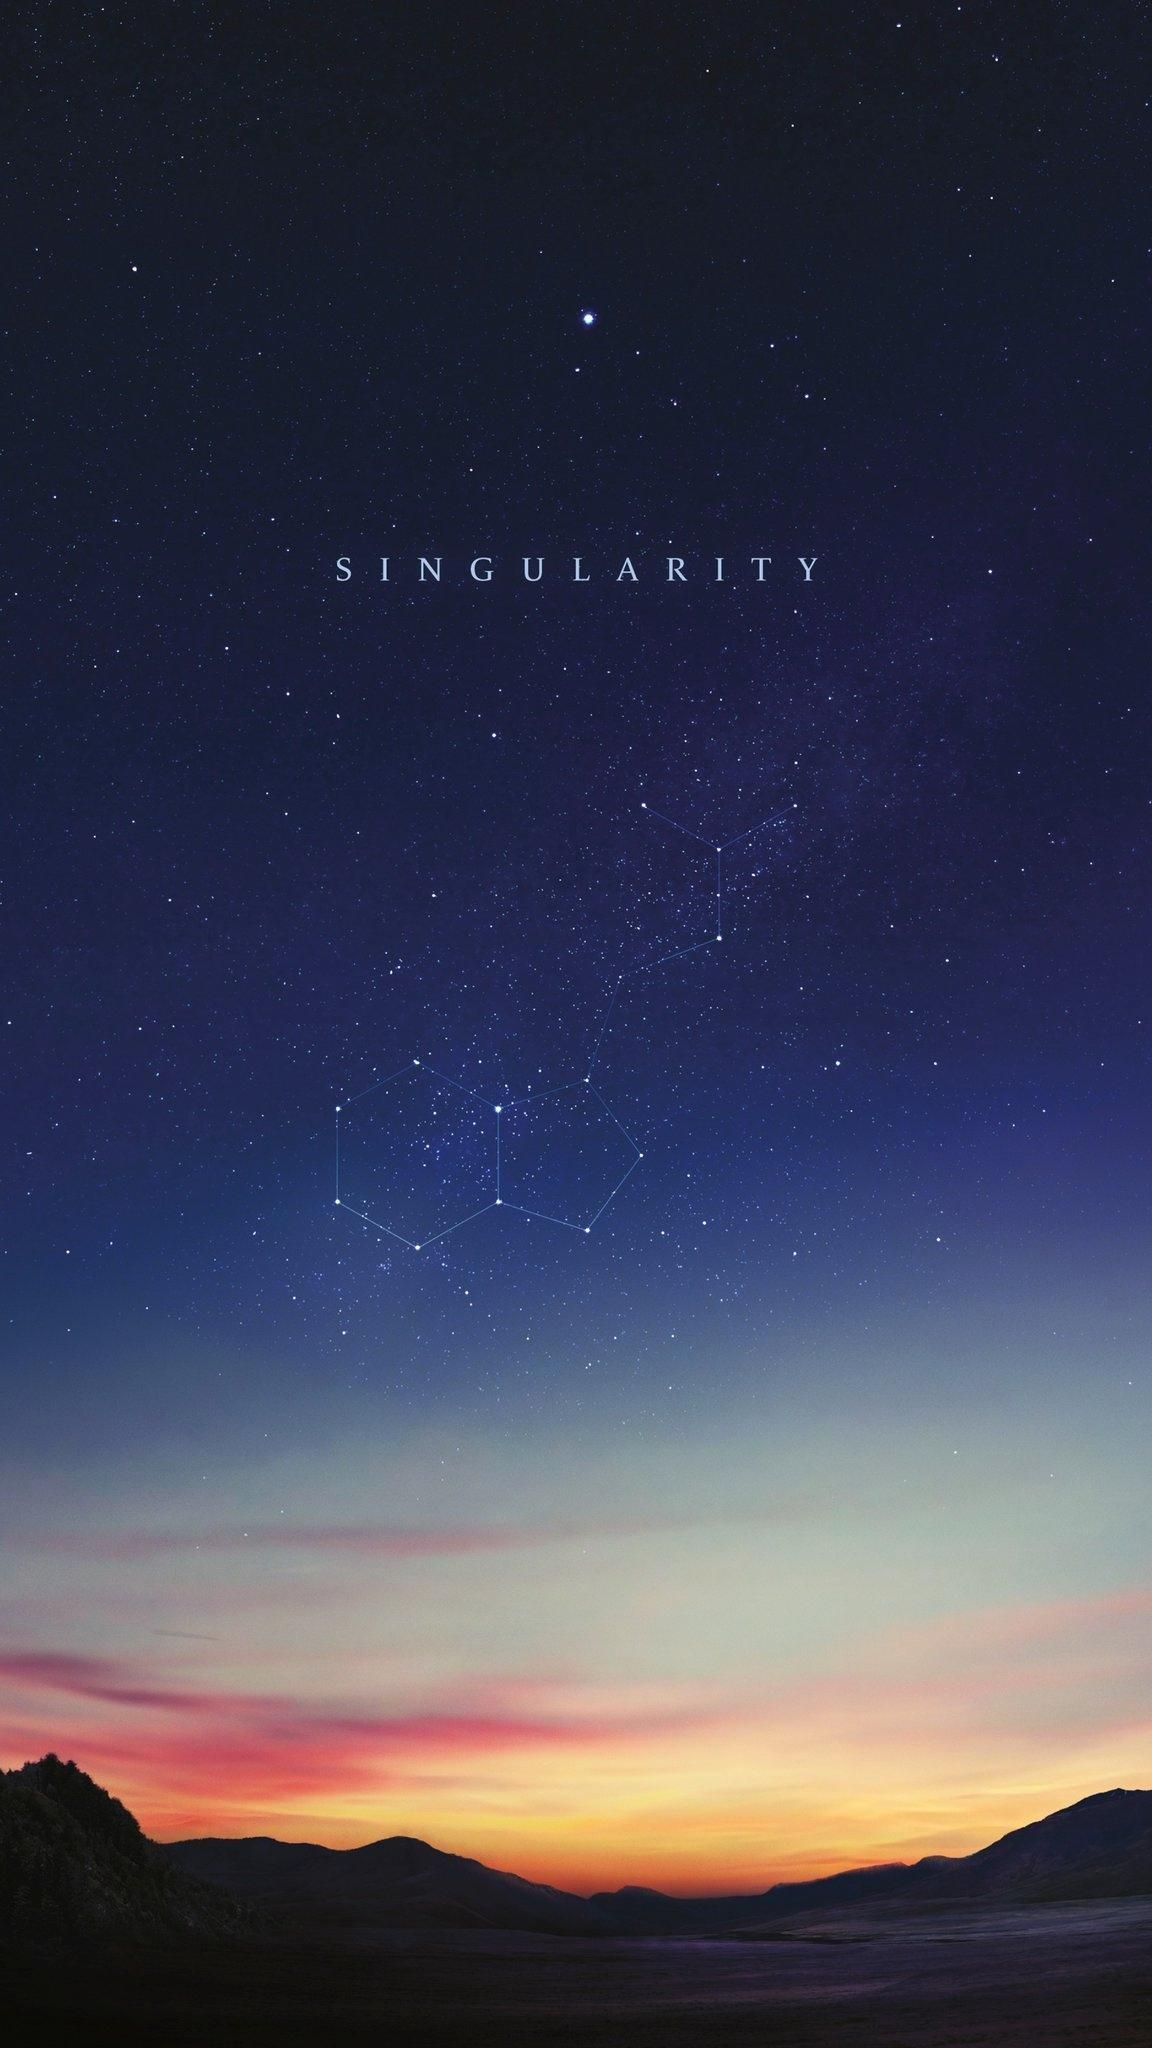 Jon Hopkins Singularity Album Cover Beautiful Wallpaper